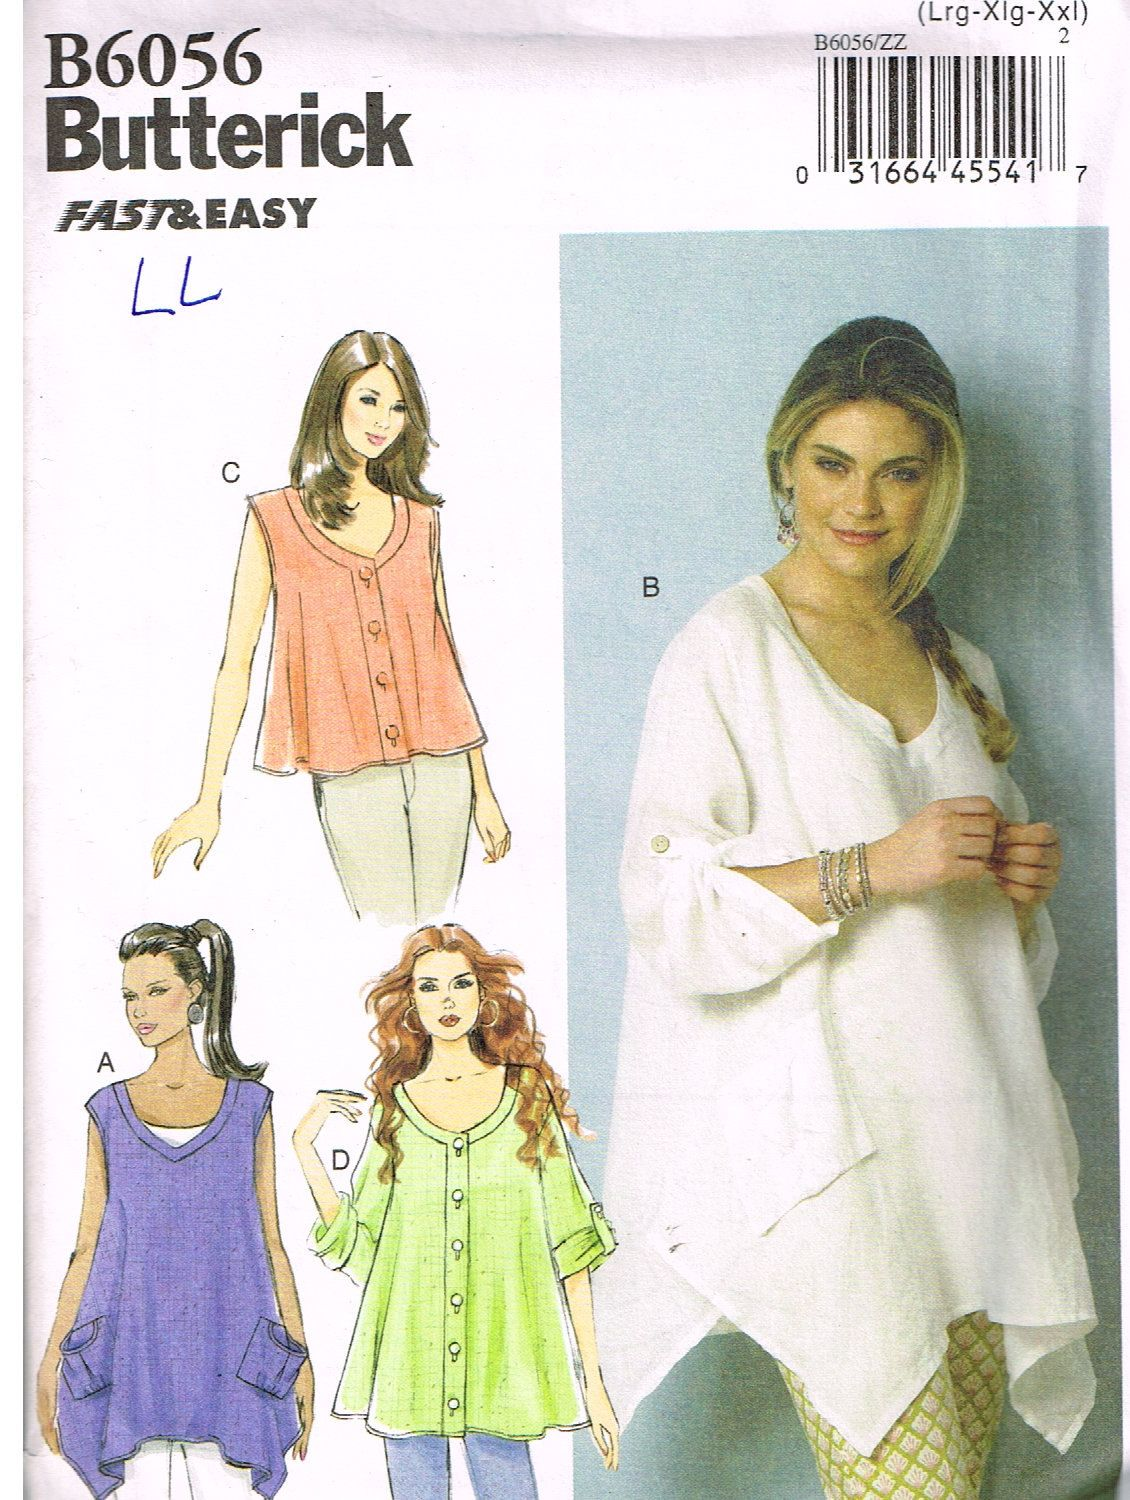 Butterick b6056 sewing pattern misses tops lrg xlg xxl plus butterick sewing pattern misses tent tops jeuxipadfo Image collections